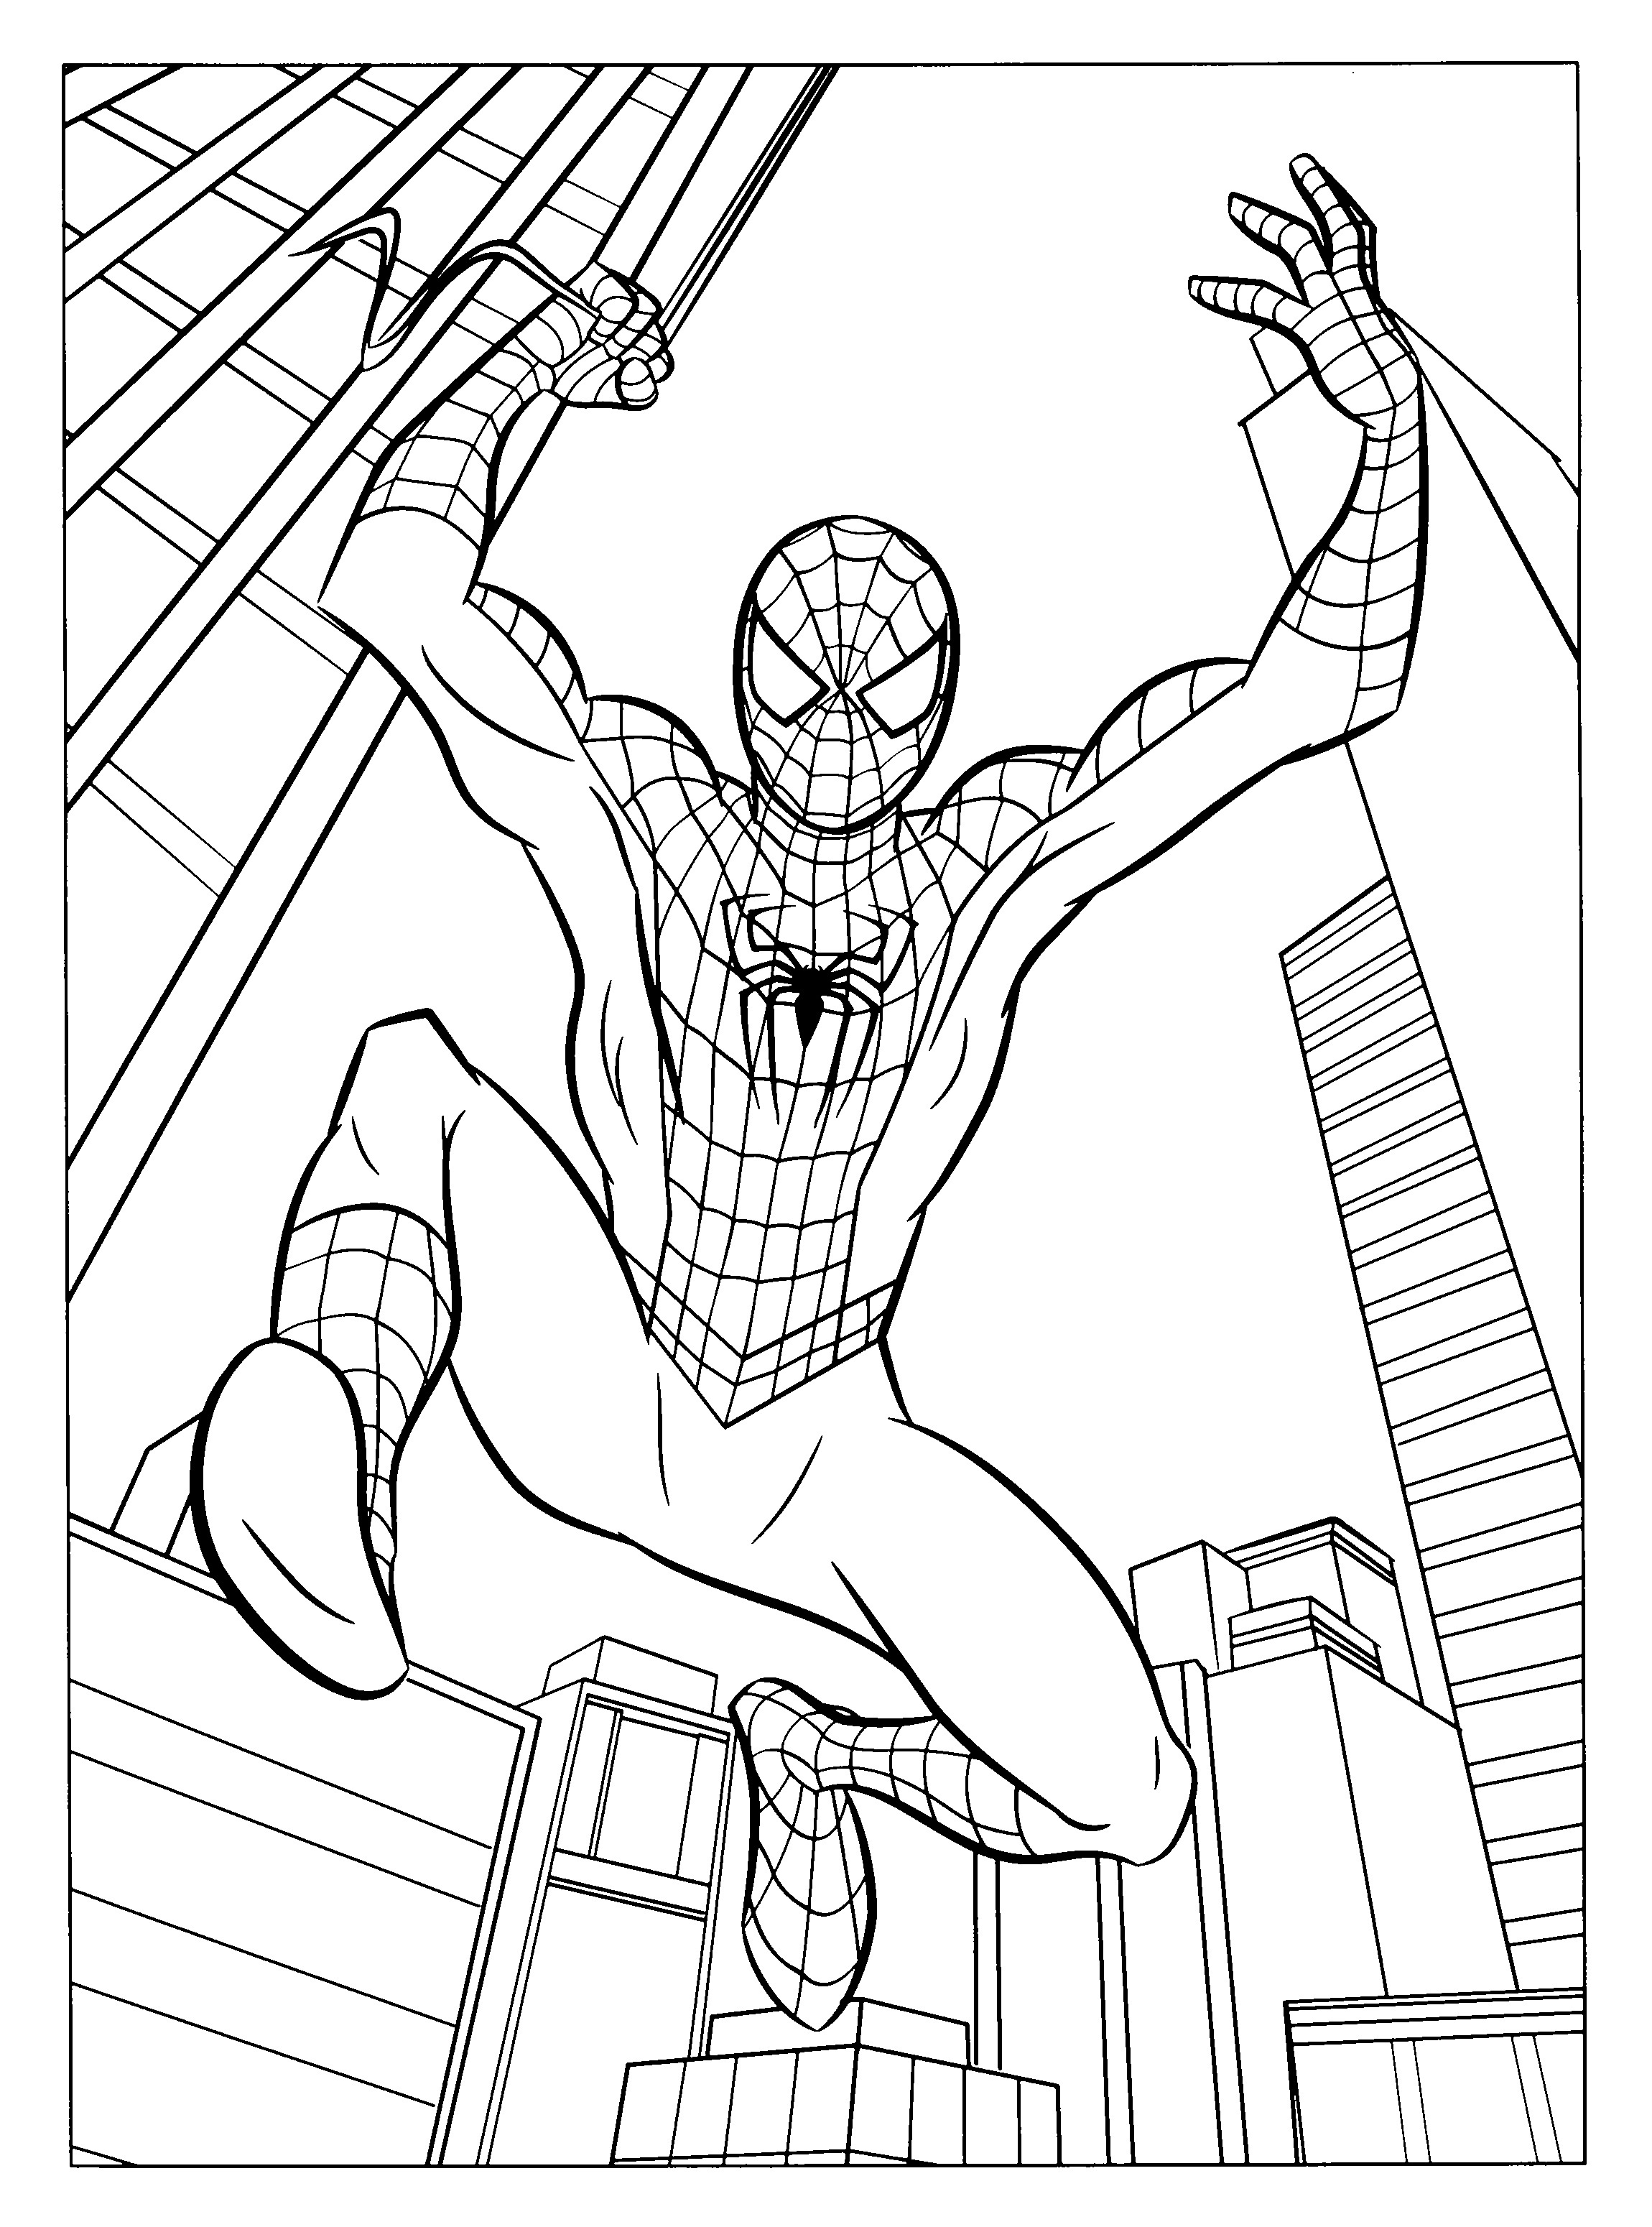 Spiderman colouring search results calendar 2015 for The amazing spider man 2 coloring pages